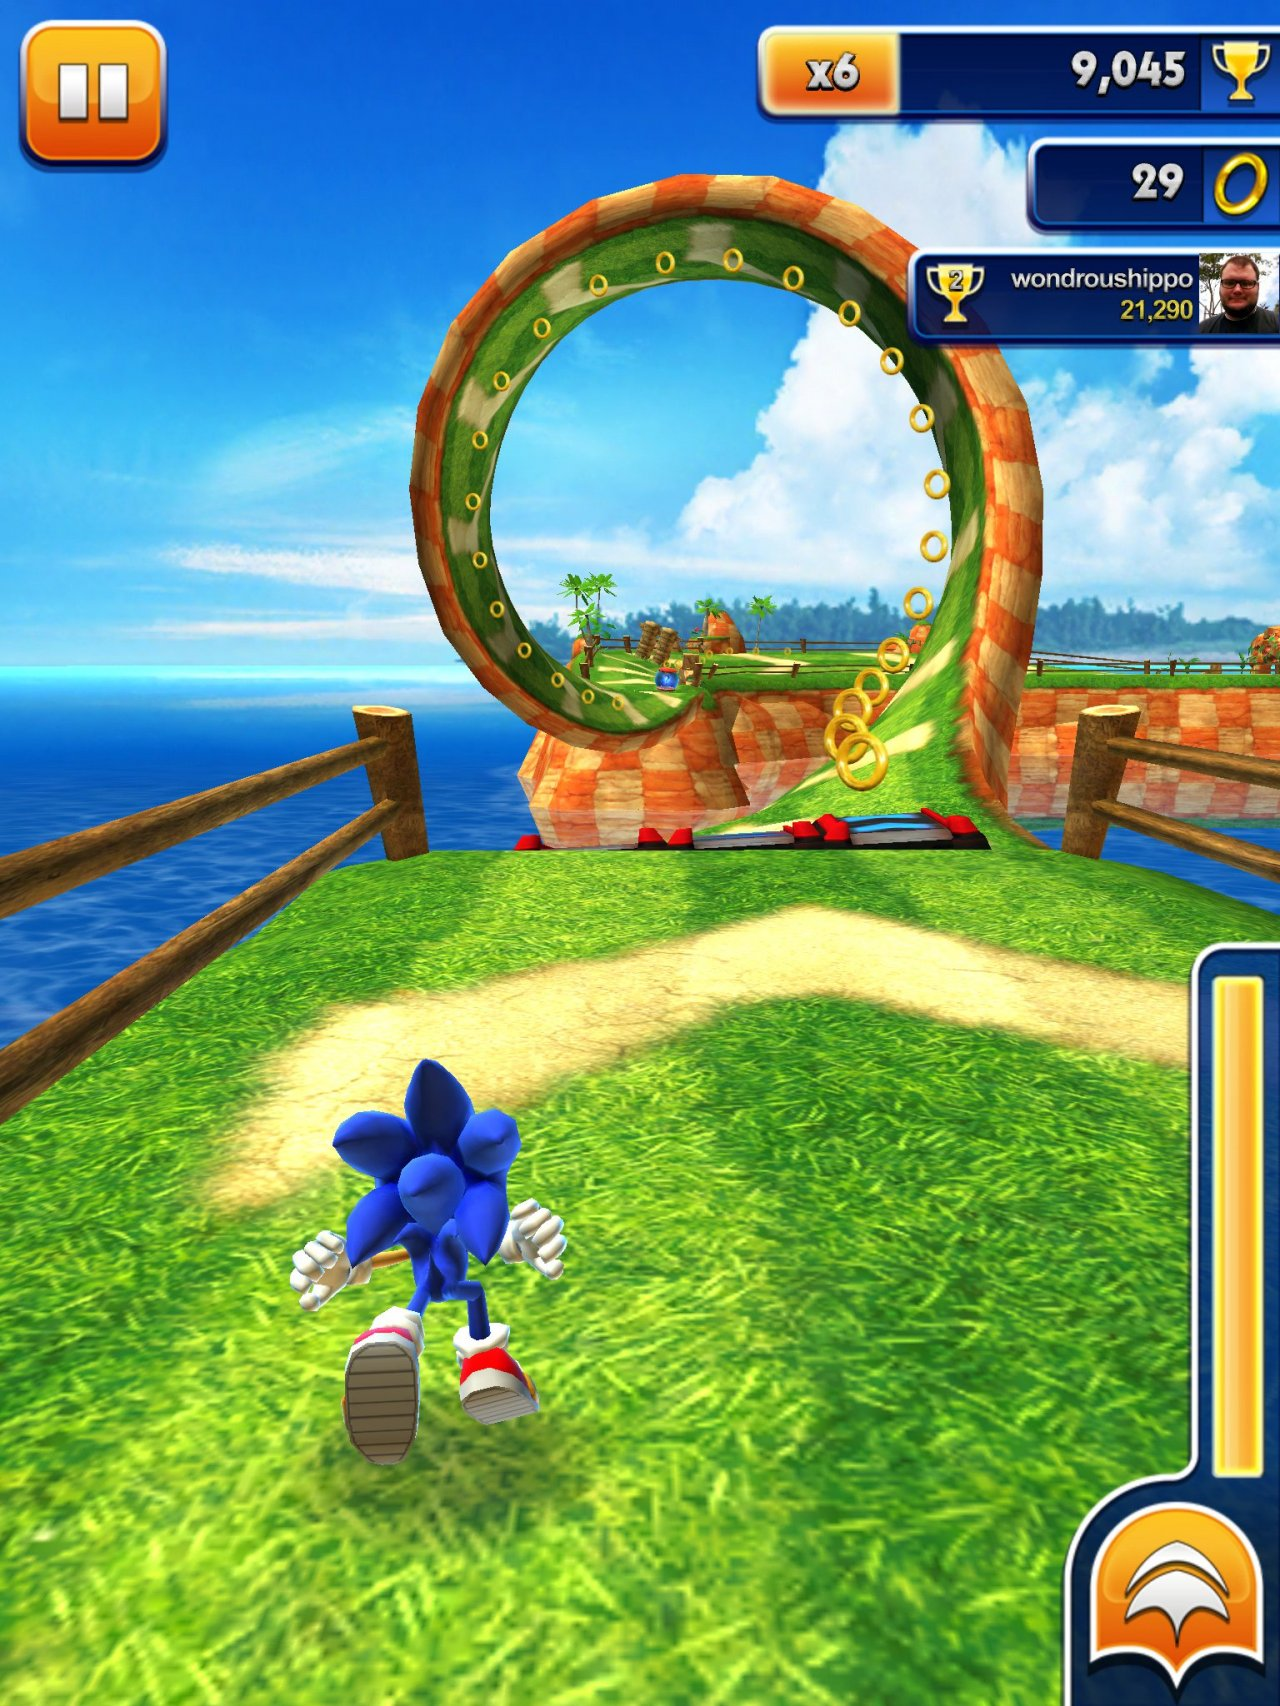 Sonic Dash players can take on a Sonic Lost World boss for a limited time